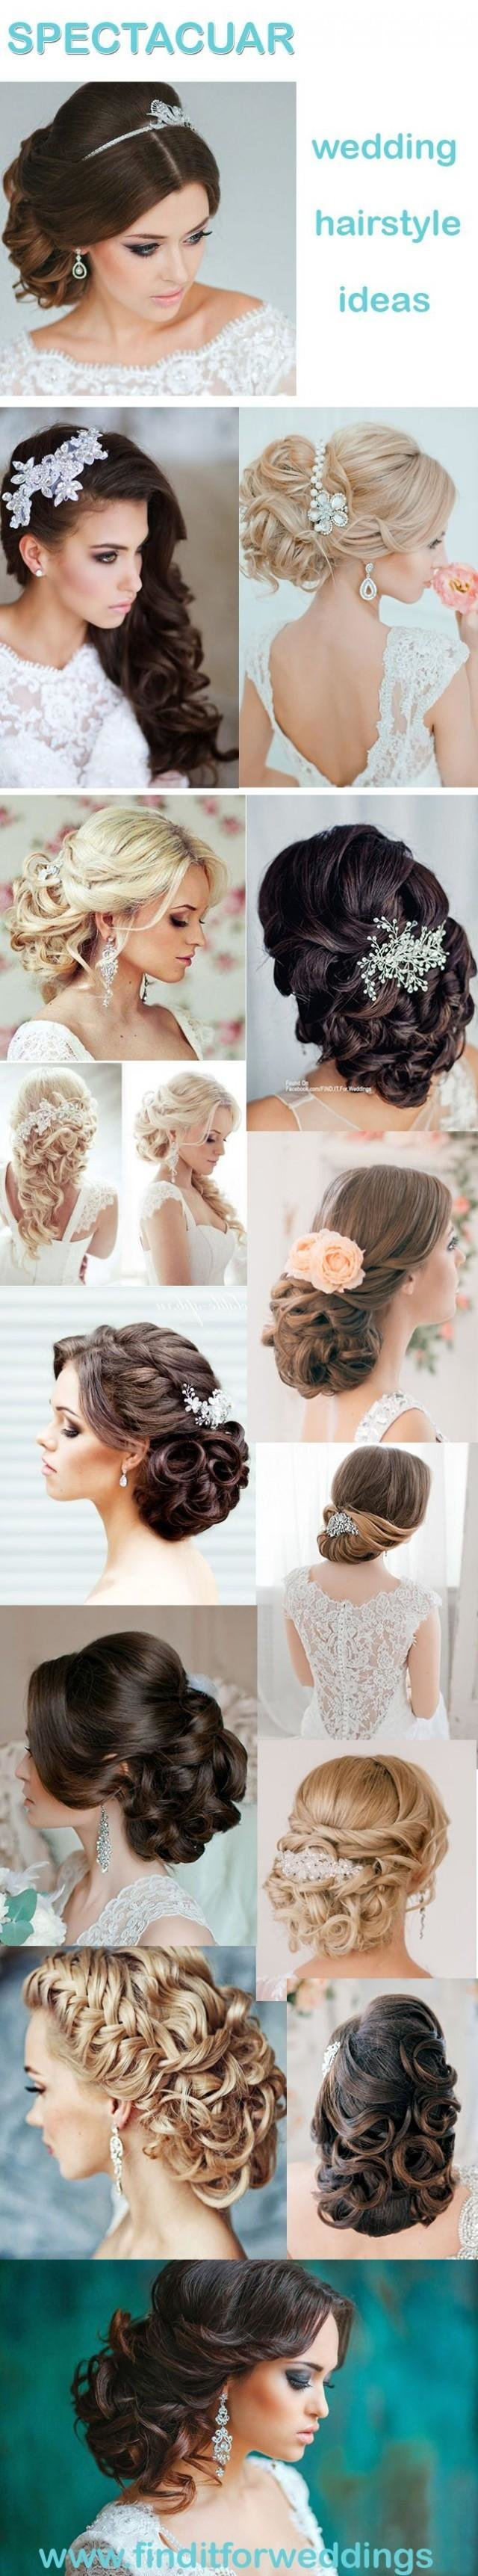 The Best Cheveux Our Most Popular Wedding Hairstyles 2192095 Weddbook Pictures